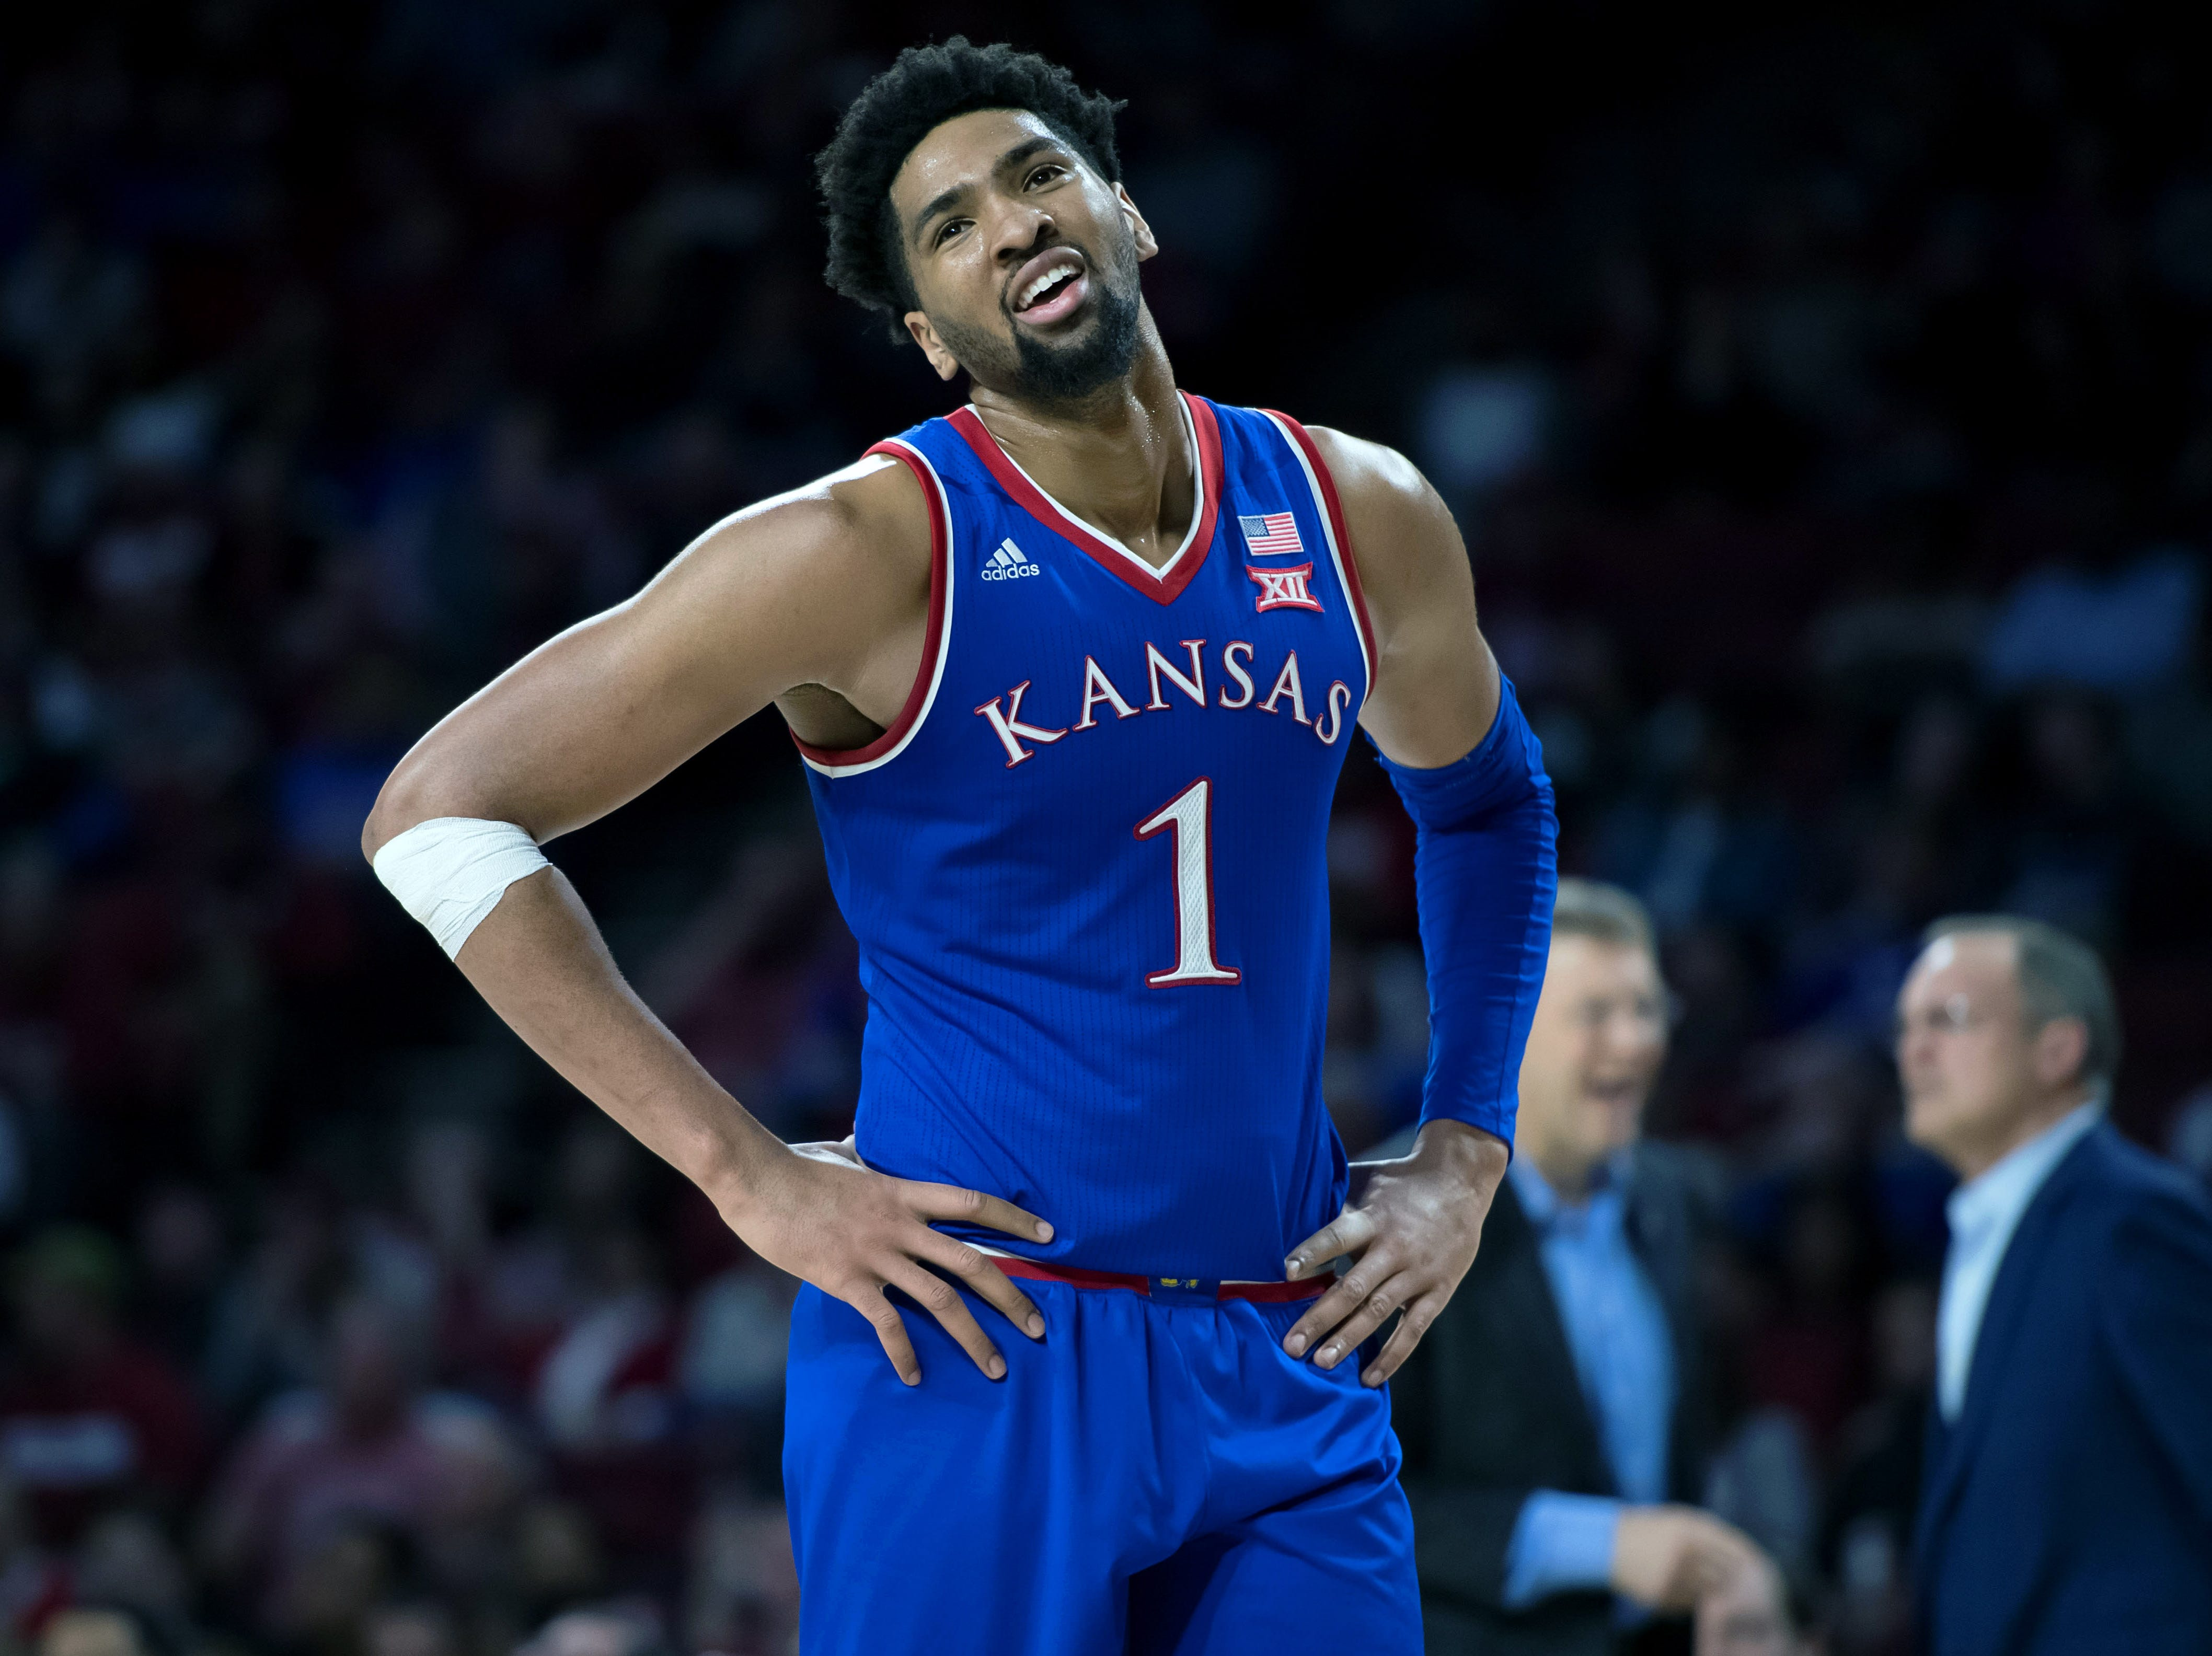 Kansas (25-9), No. 4 seed in Midwest, at-large bid out of Big 12 Conference